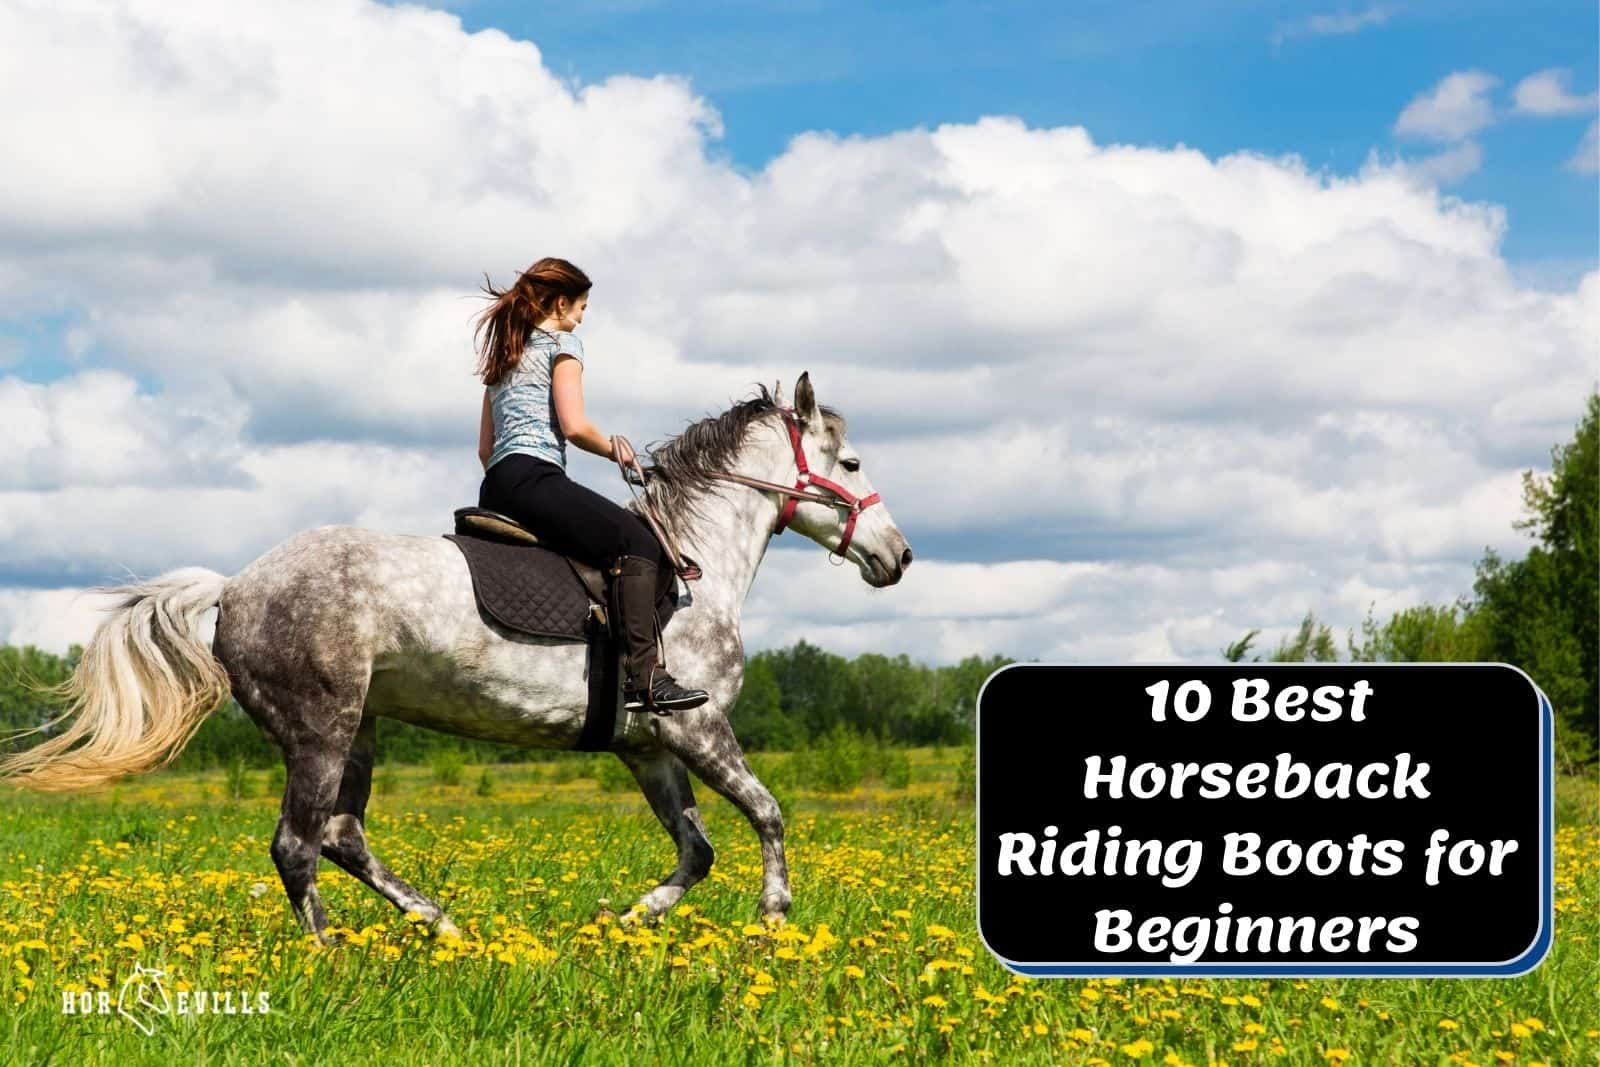 lady wearing horseback riding boots for beginners while riding a dappled grey horse